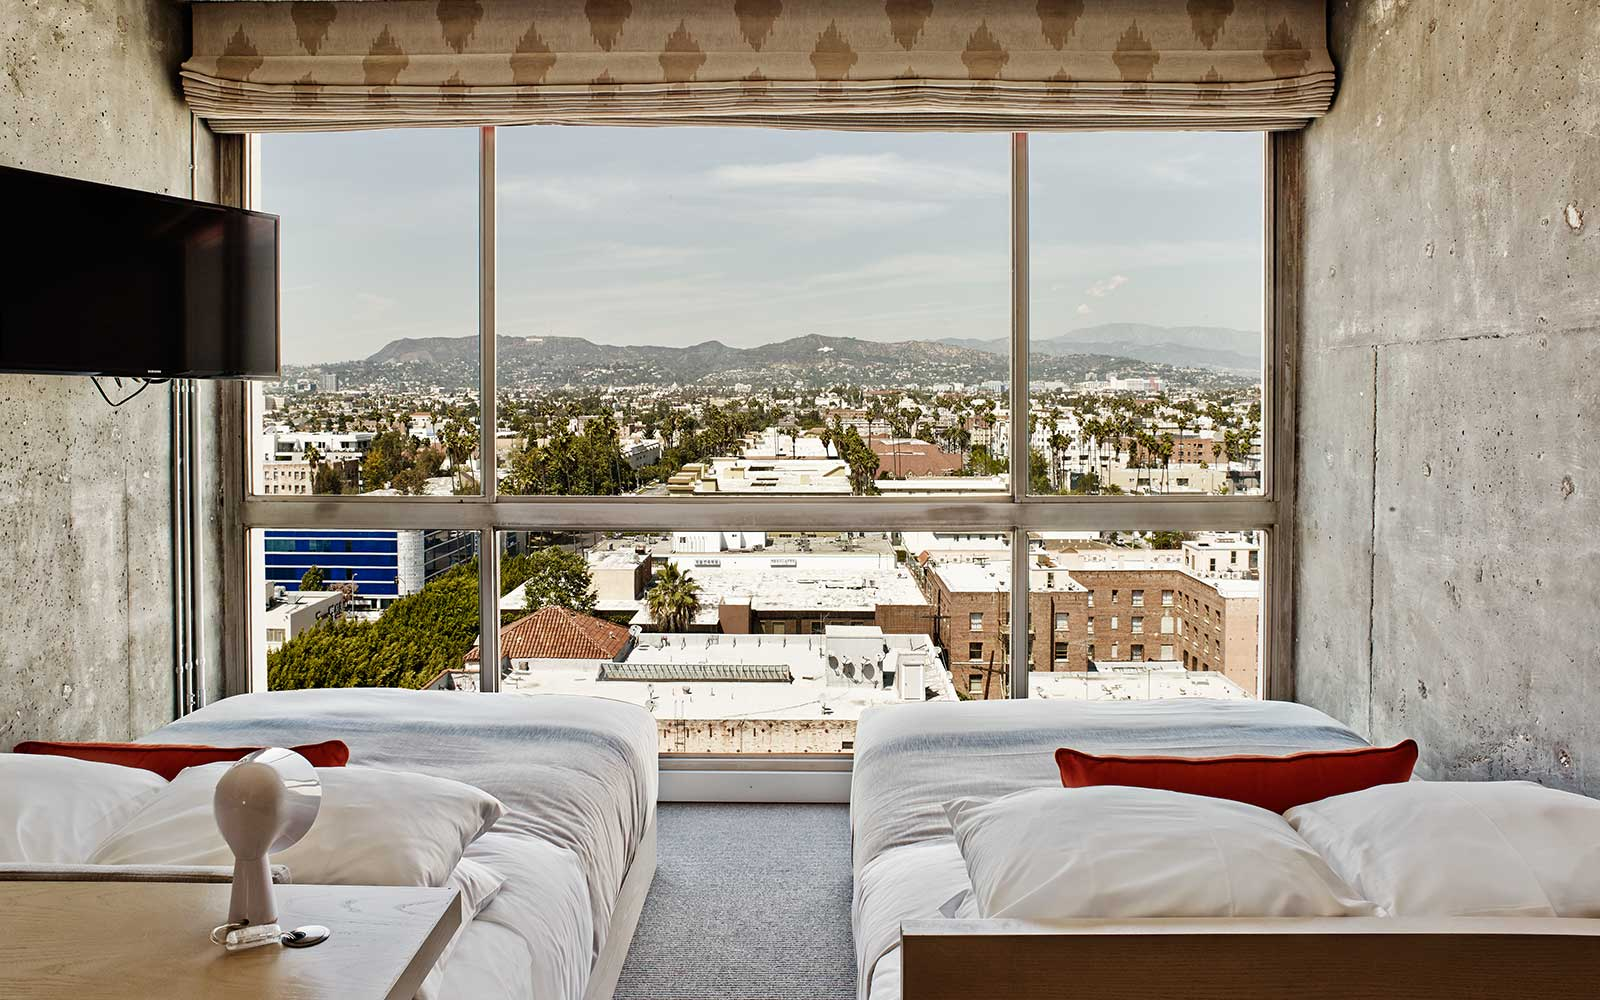 The Line Hotel - Room / Knibb Design (11)